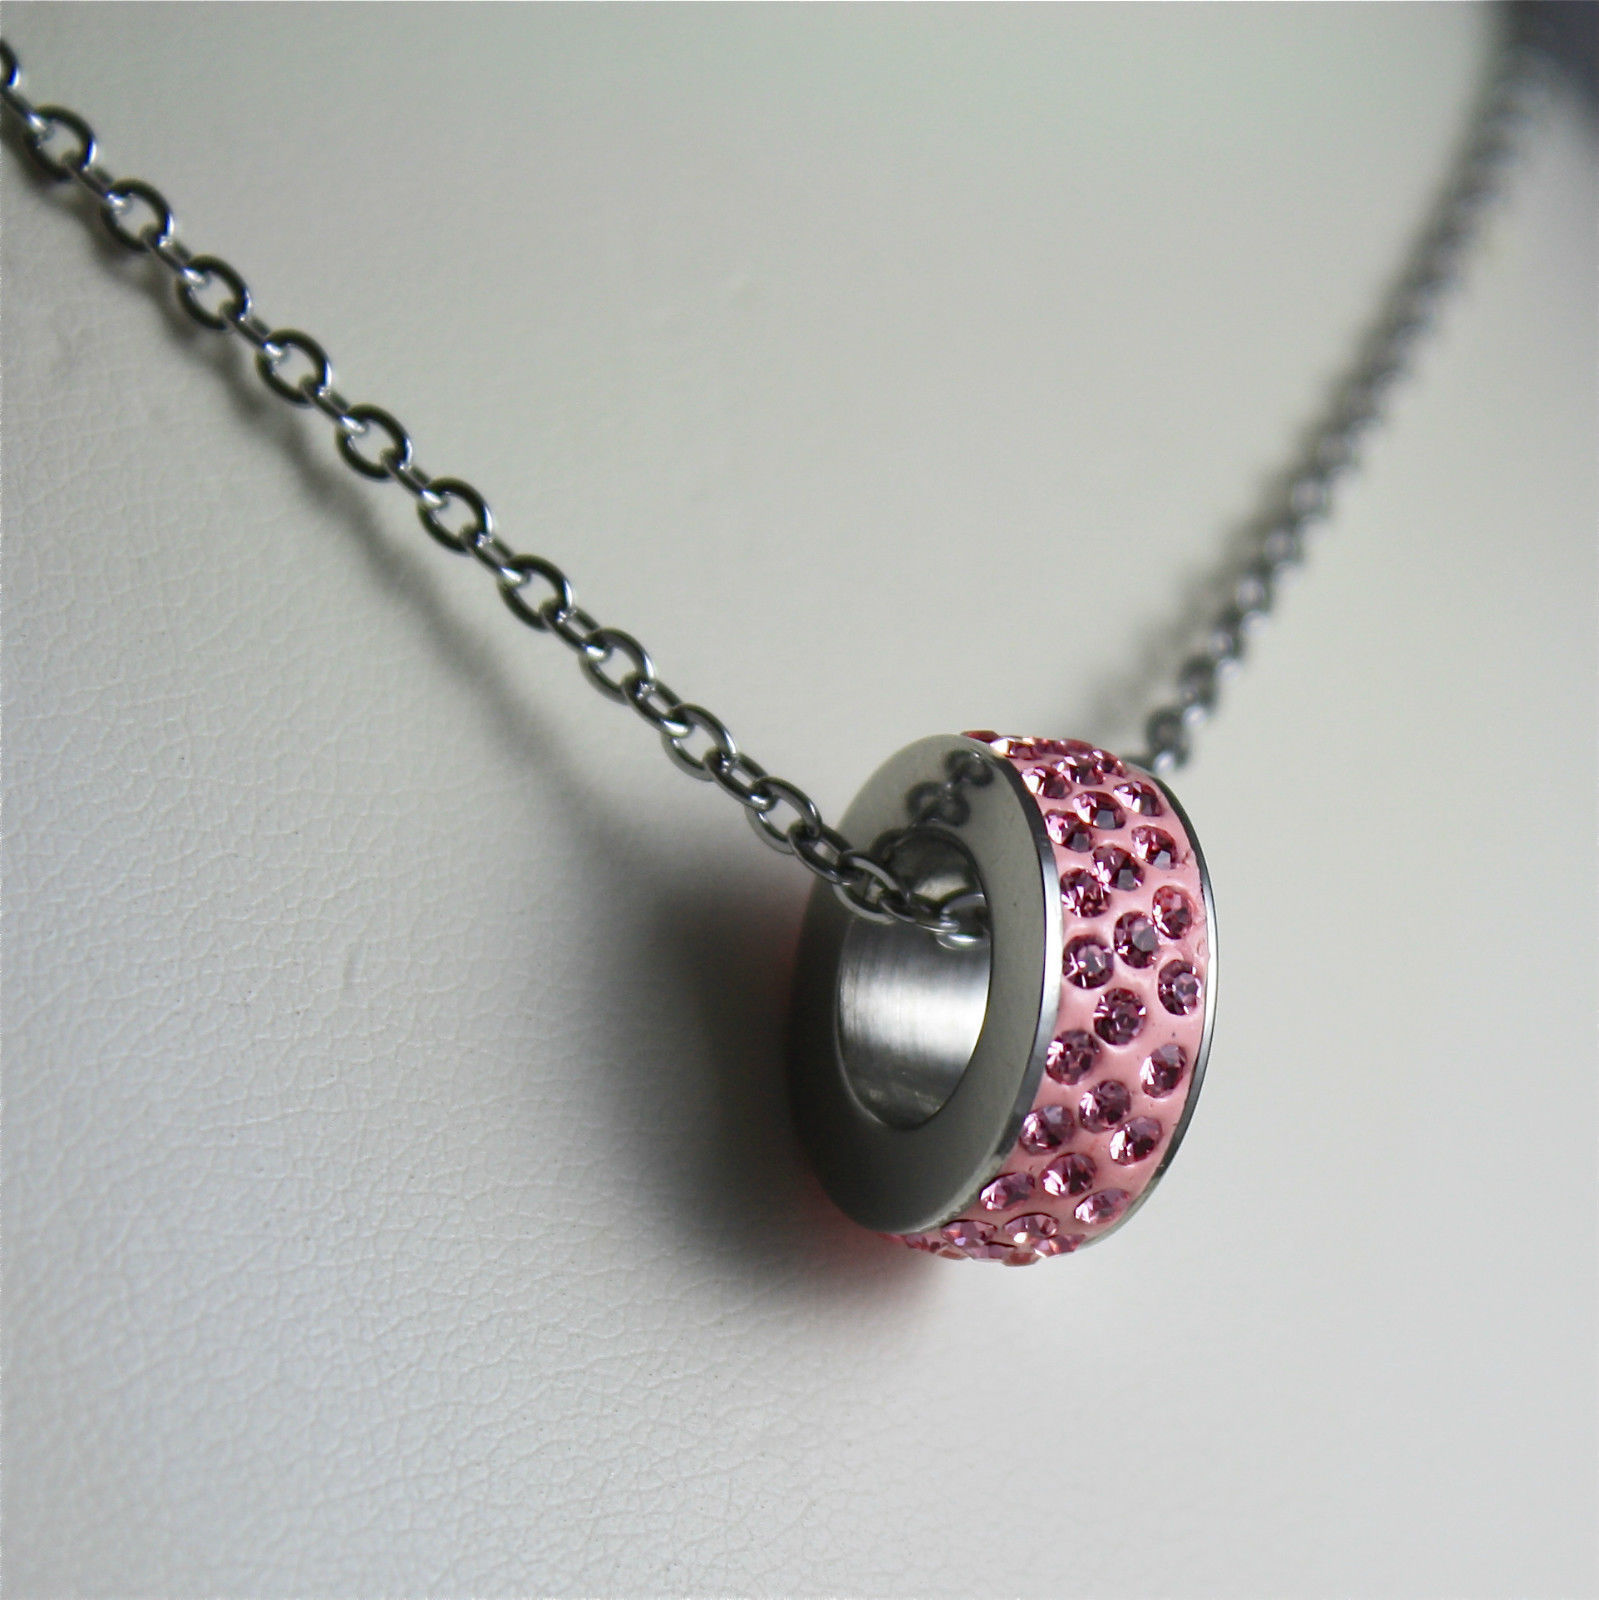 S'AGAPO' NECKLACE, 316L STEEL, PINK PENDANT WITH FACETED CRYSTALS.